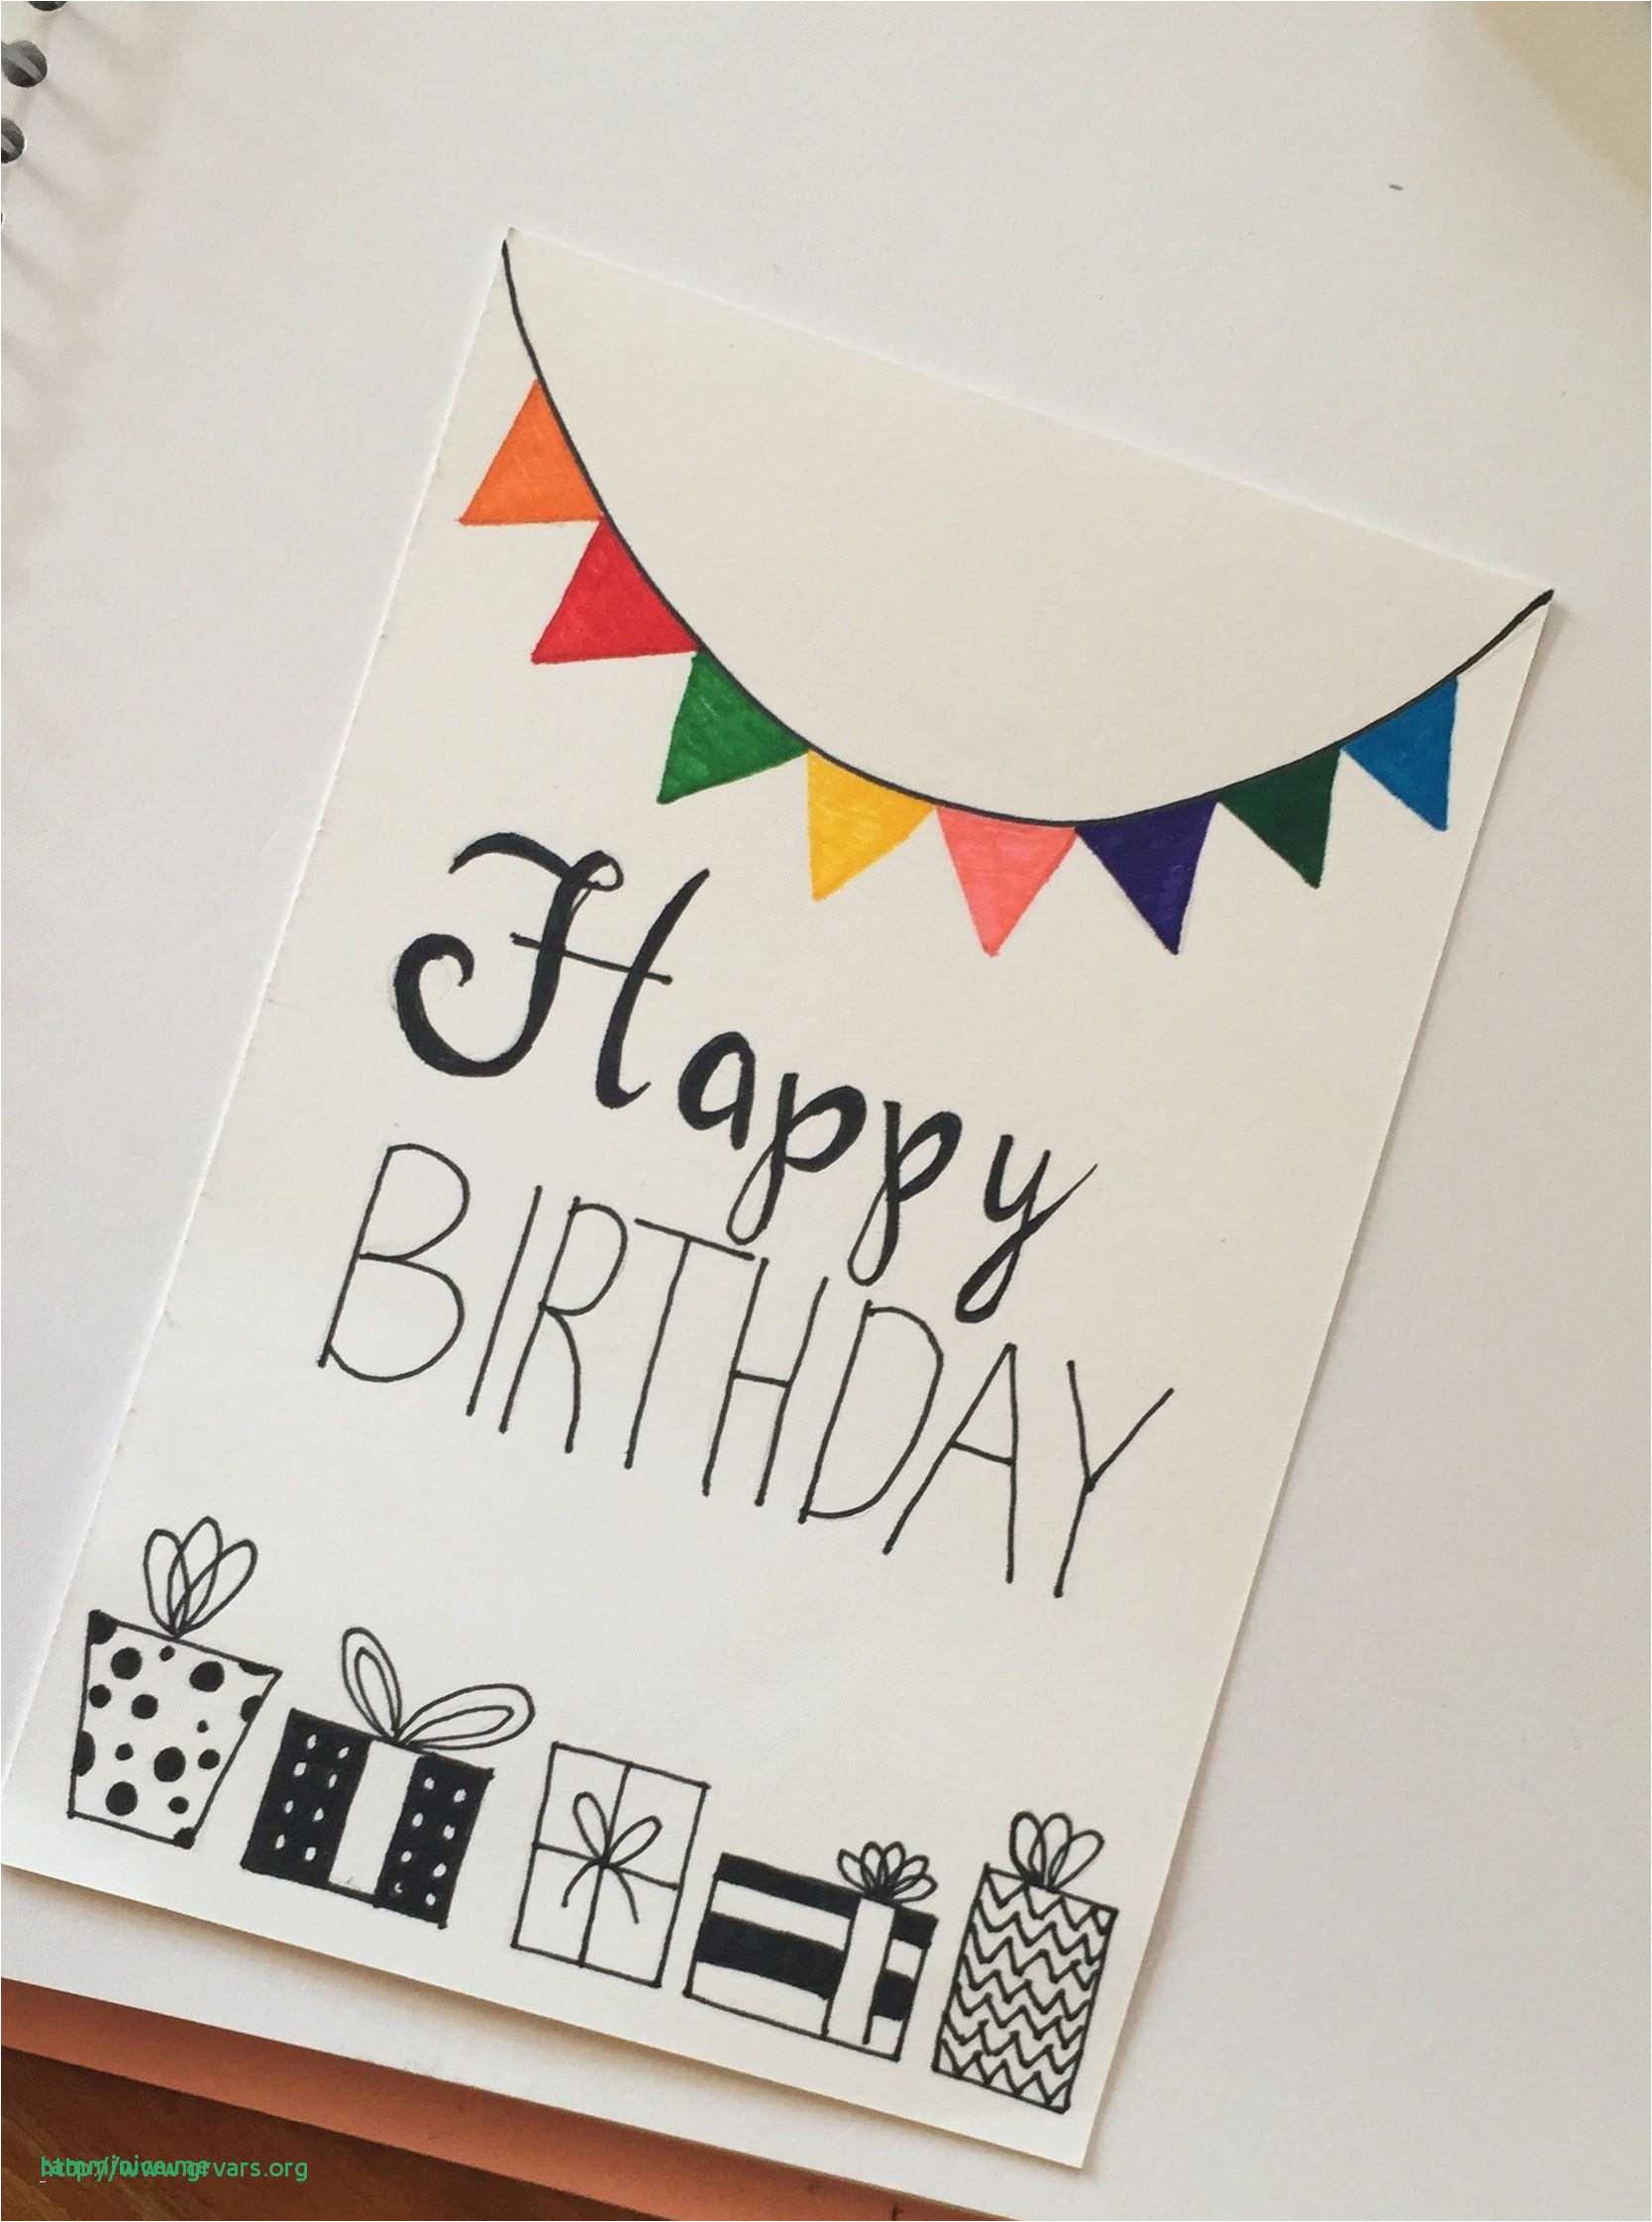 Birthday Card Idea Diy Birthday Card Design Ideas Simple Handmade Birthday Cards